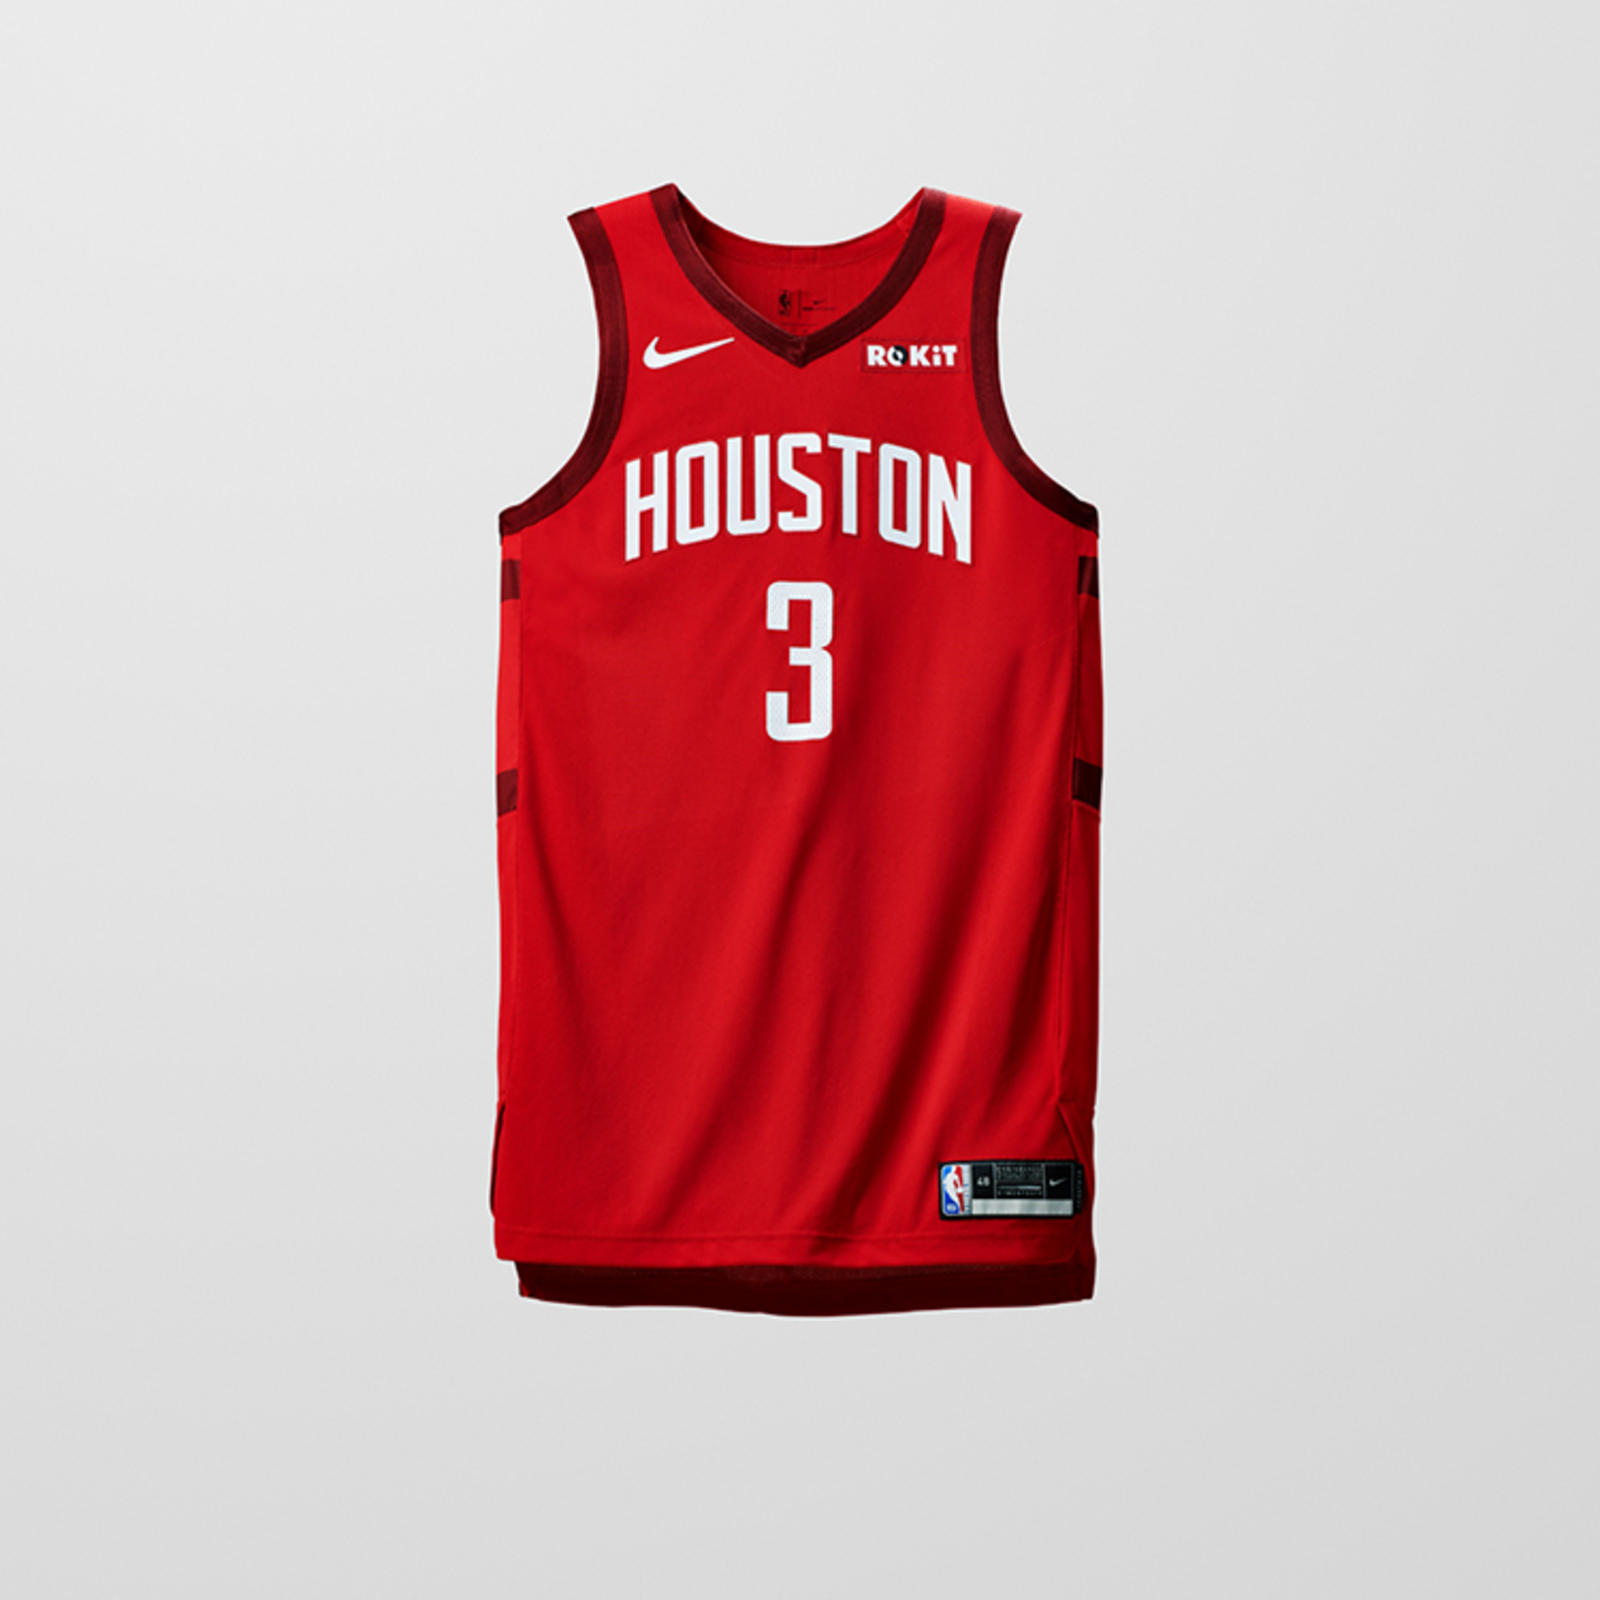 Introducing the Nike x NBA EARNED Edition Uniforms 1. HOUSTON ROCKETS 6aa486ba7